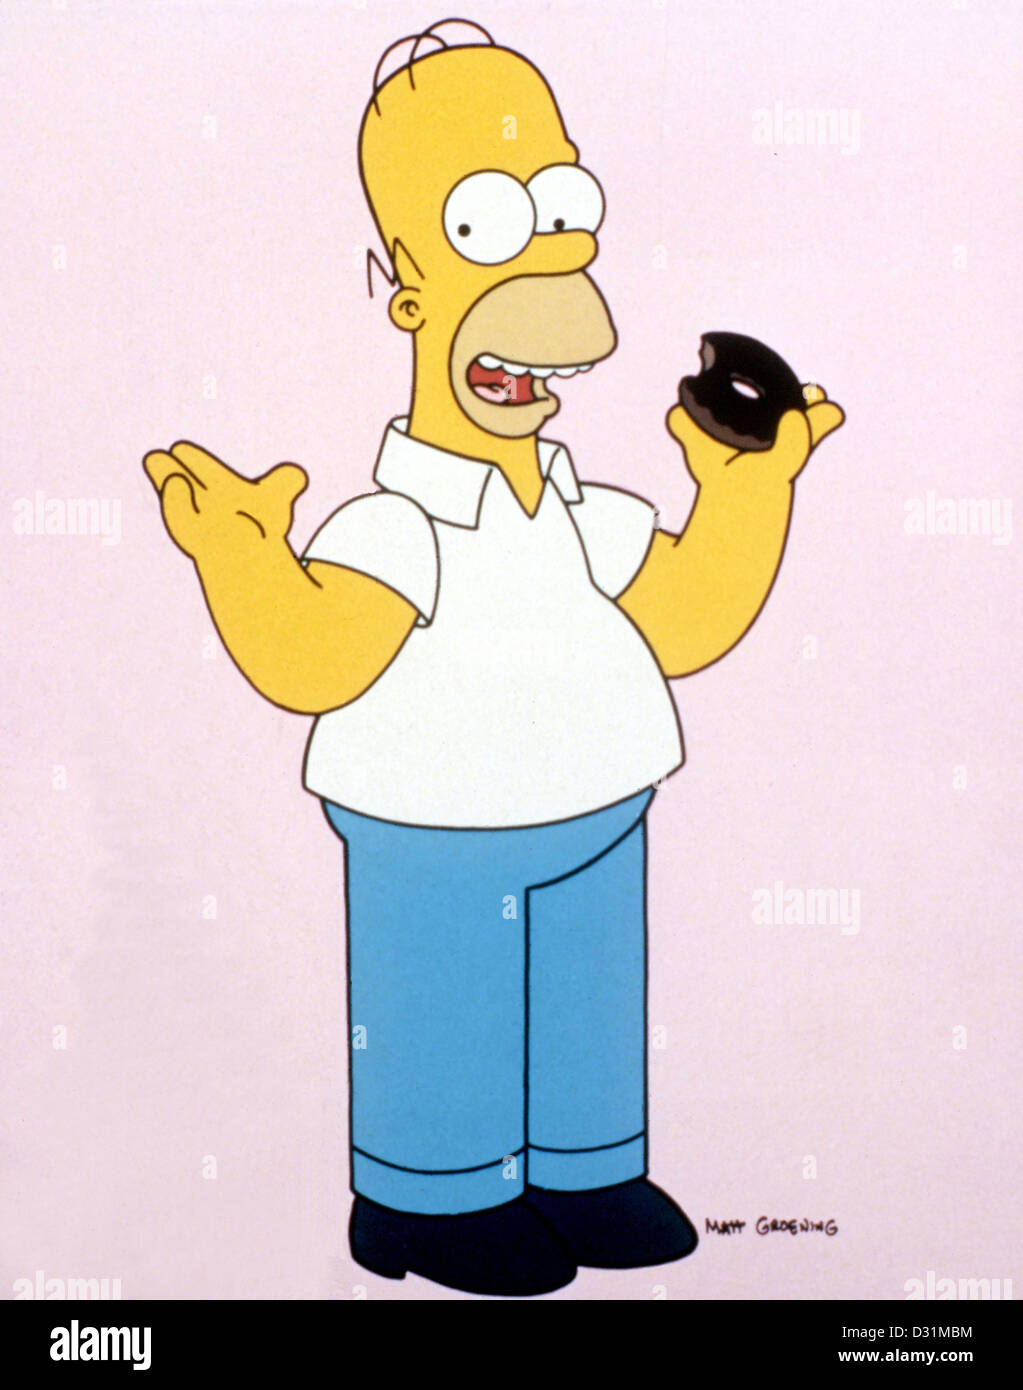 The Simpsons (TV Series) - Stock Image